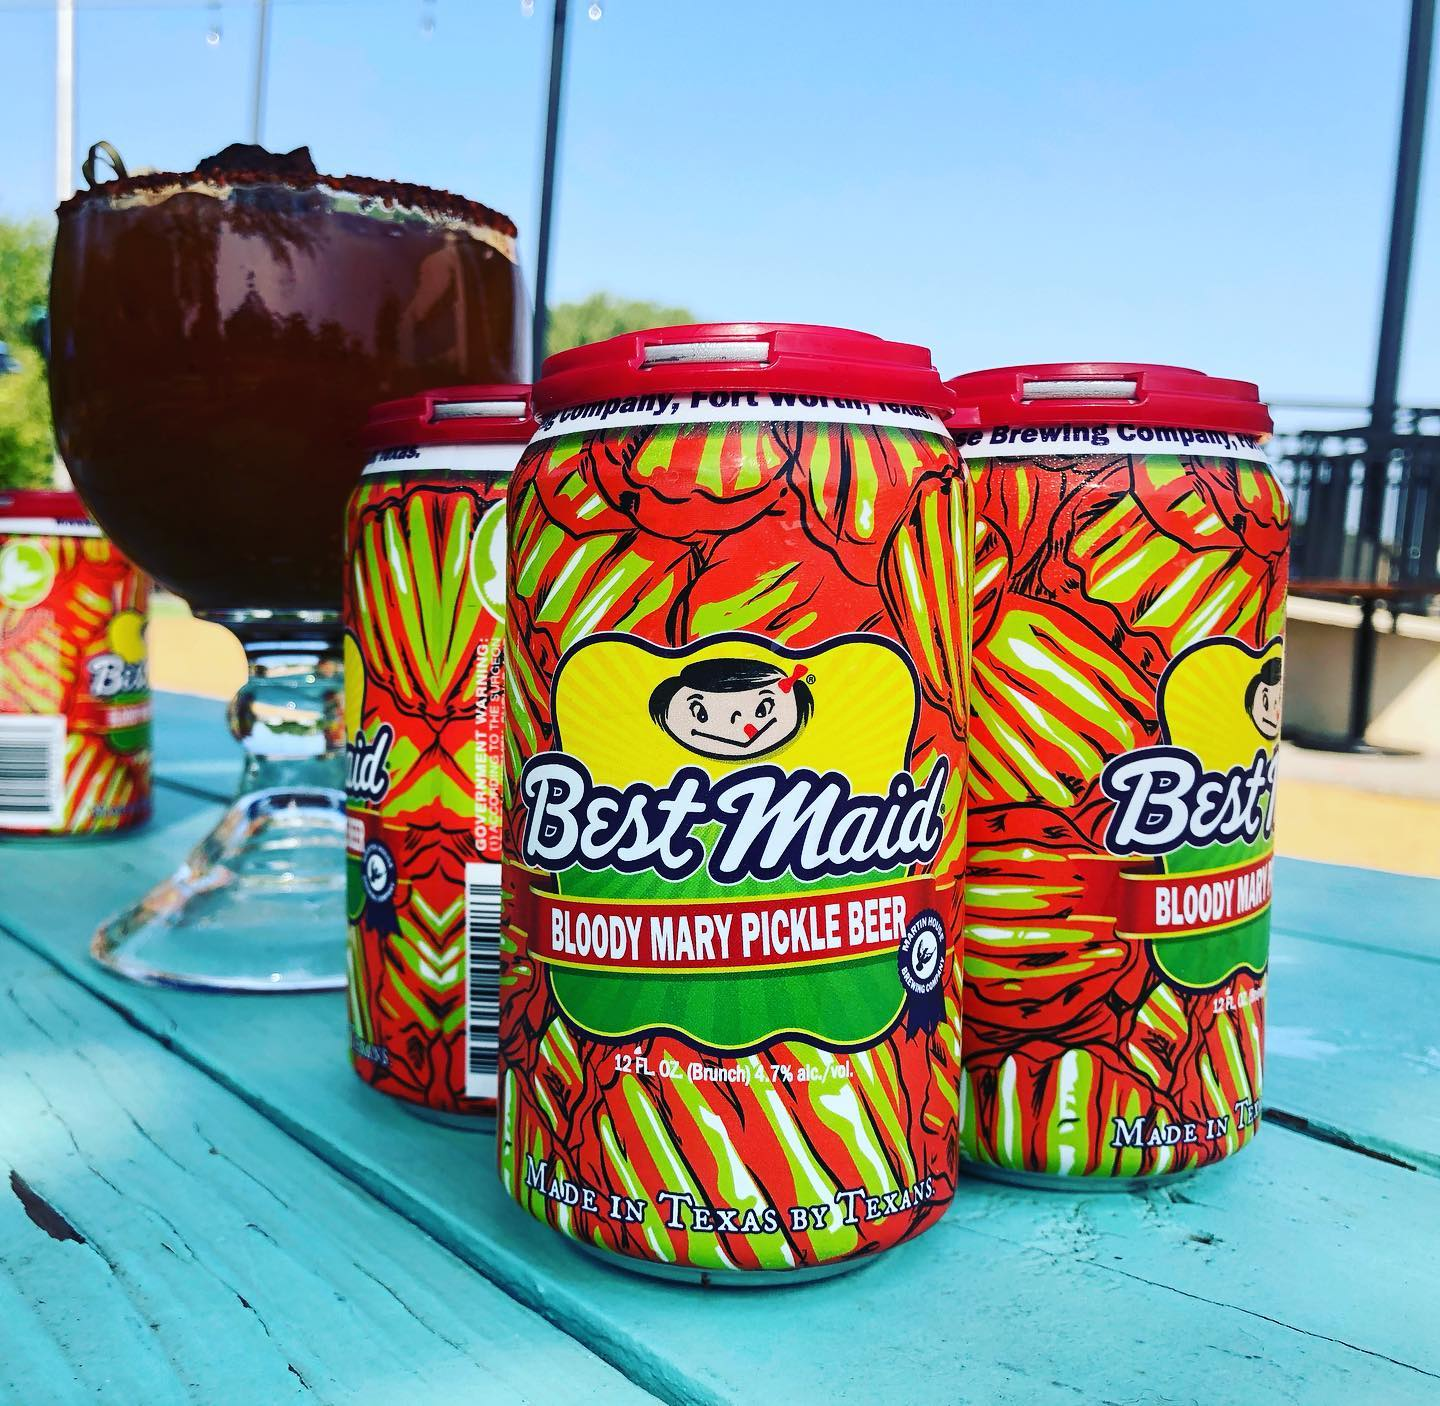 "a four-pack of beers, the cans of which are bright green and red. The name of the beer is ""bloody mary pickle beer."" They are sitting on a blue-painted picnic table and in the background there is a large mug filled with a dark red liquid."